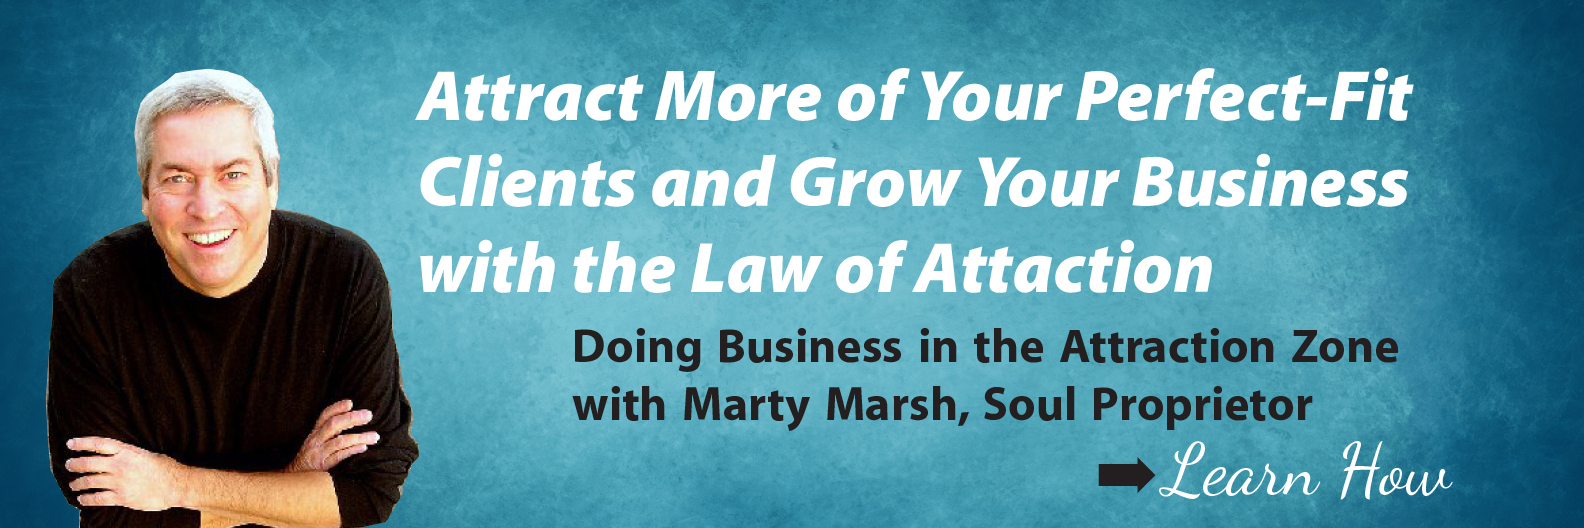 Law of Attraction attract more of your ideal clients and grow your business